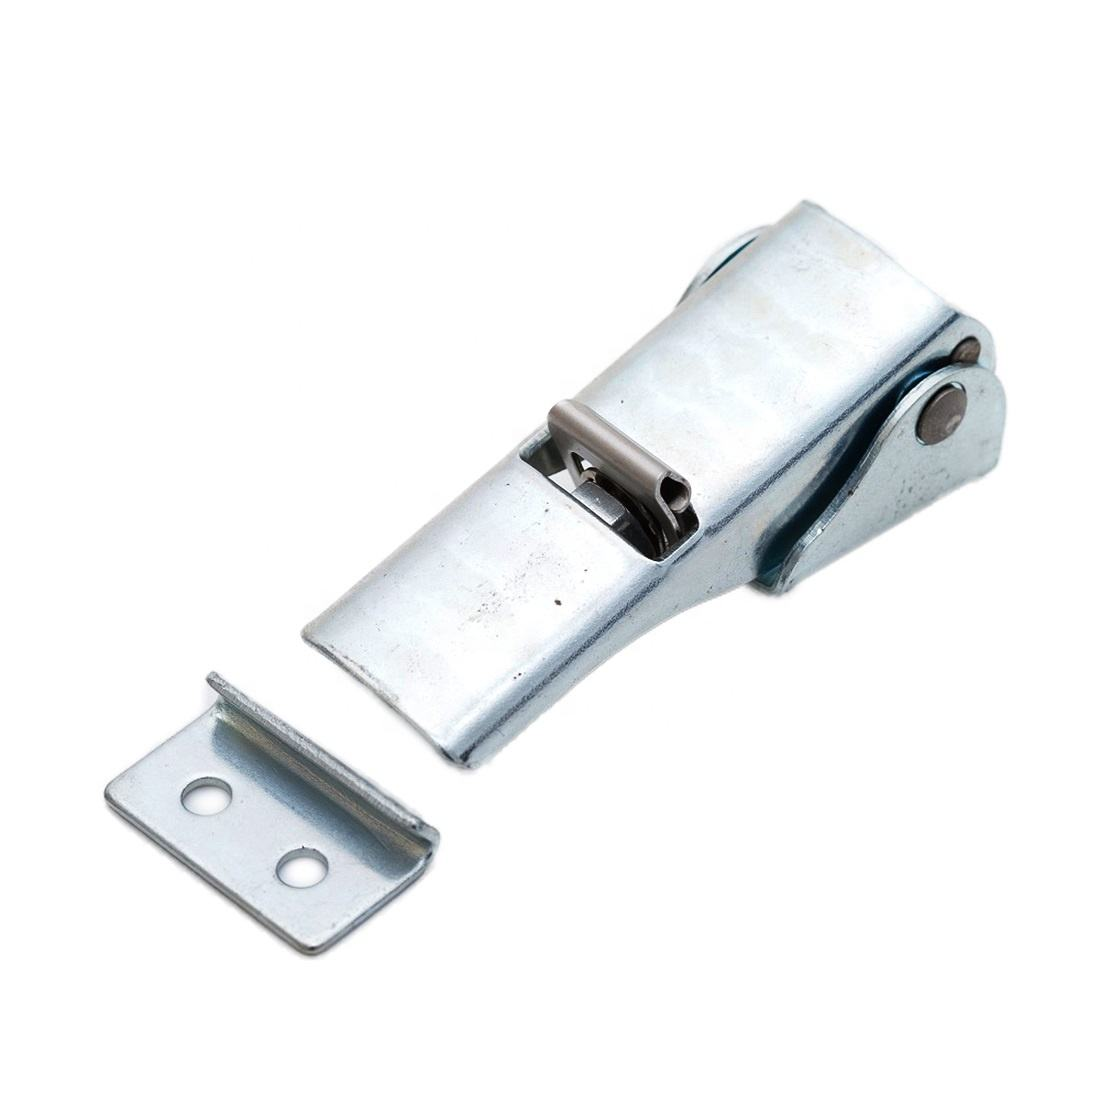 TS-602-3B Steel Toggle Latches with Striking Plate